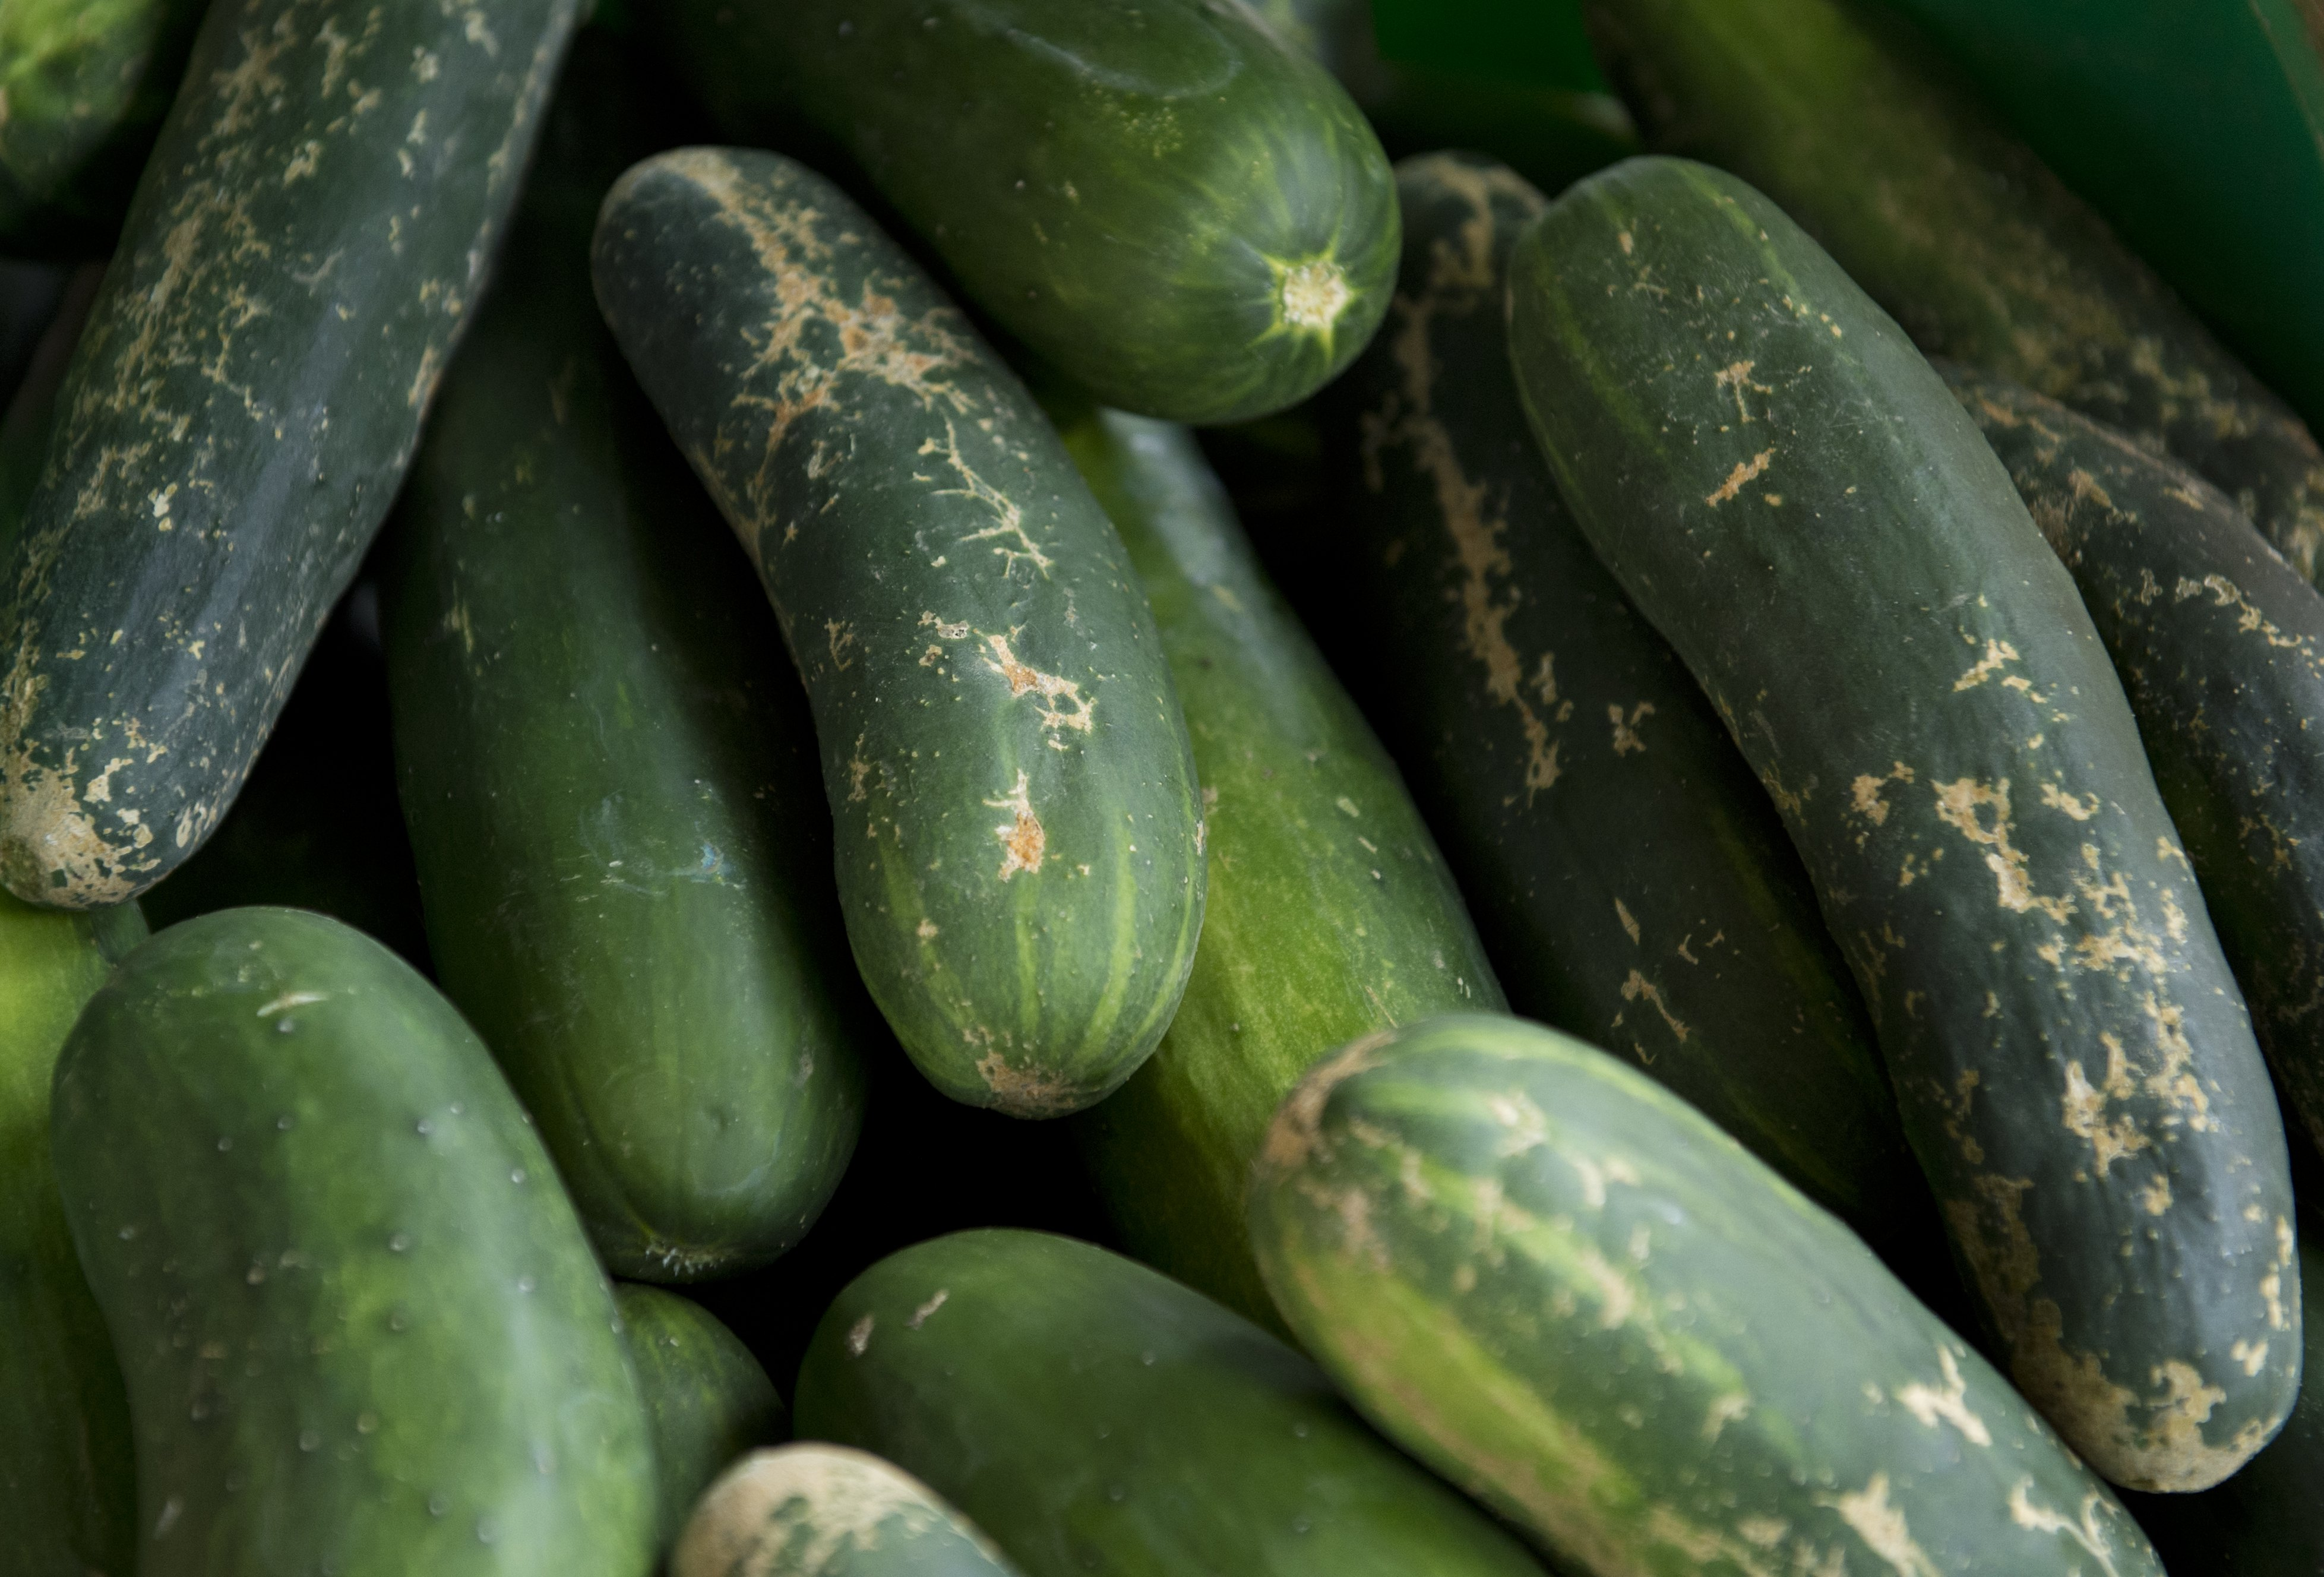 US-LIFESTYLE-FOOD-FRUITS AND VEGETABLES